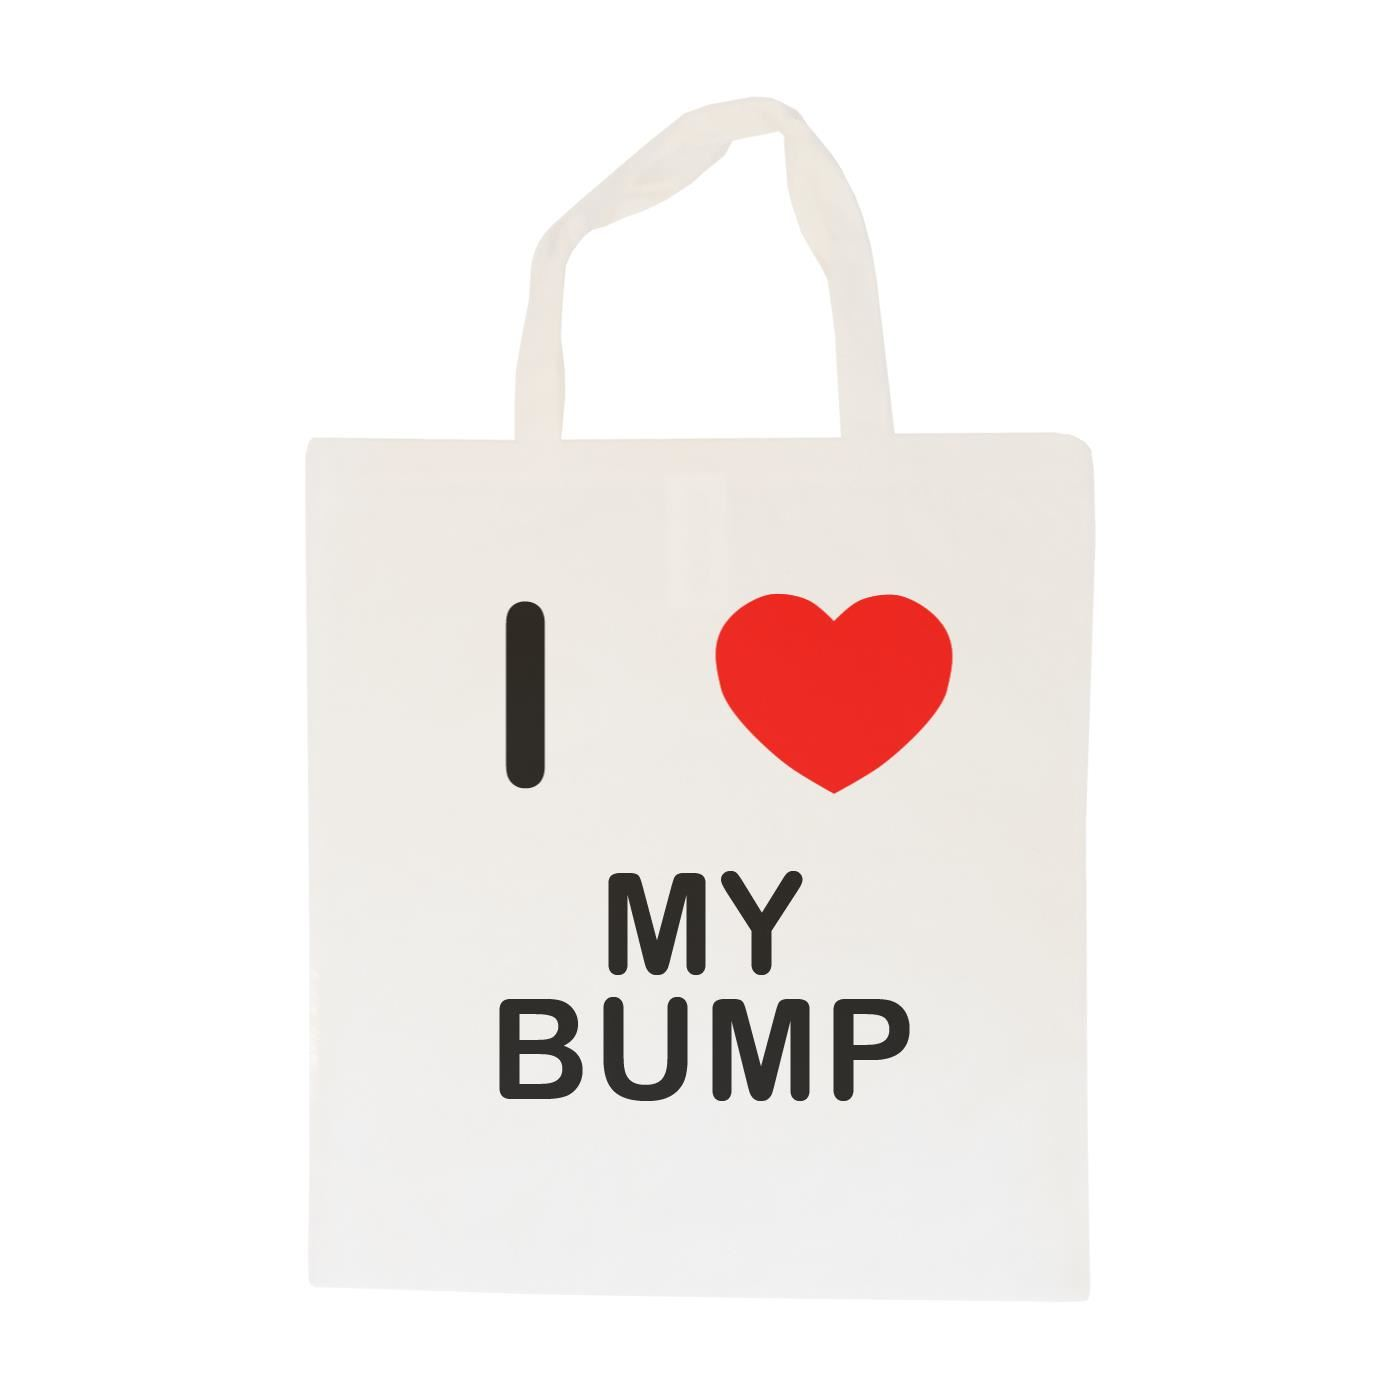 I Love My Bump - Cotton Bag | Size choice Tote, Shopper or Sling